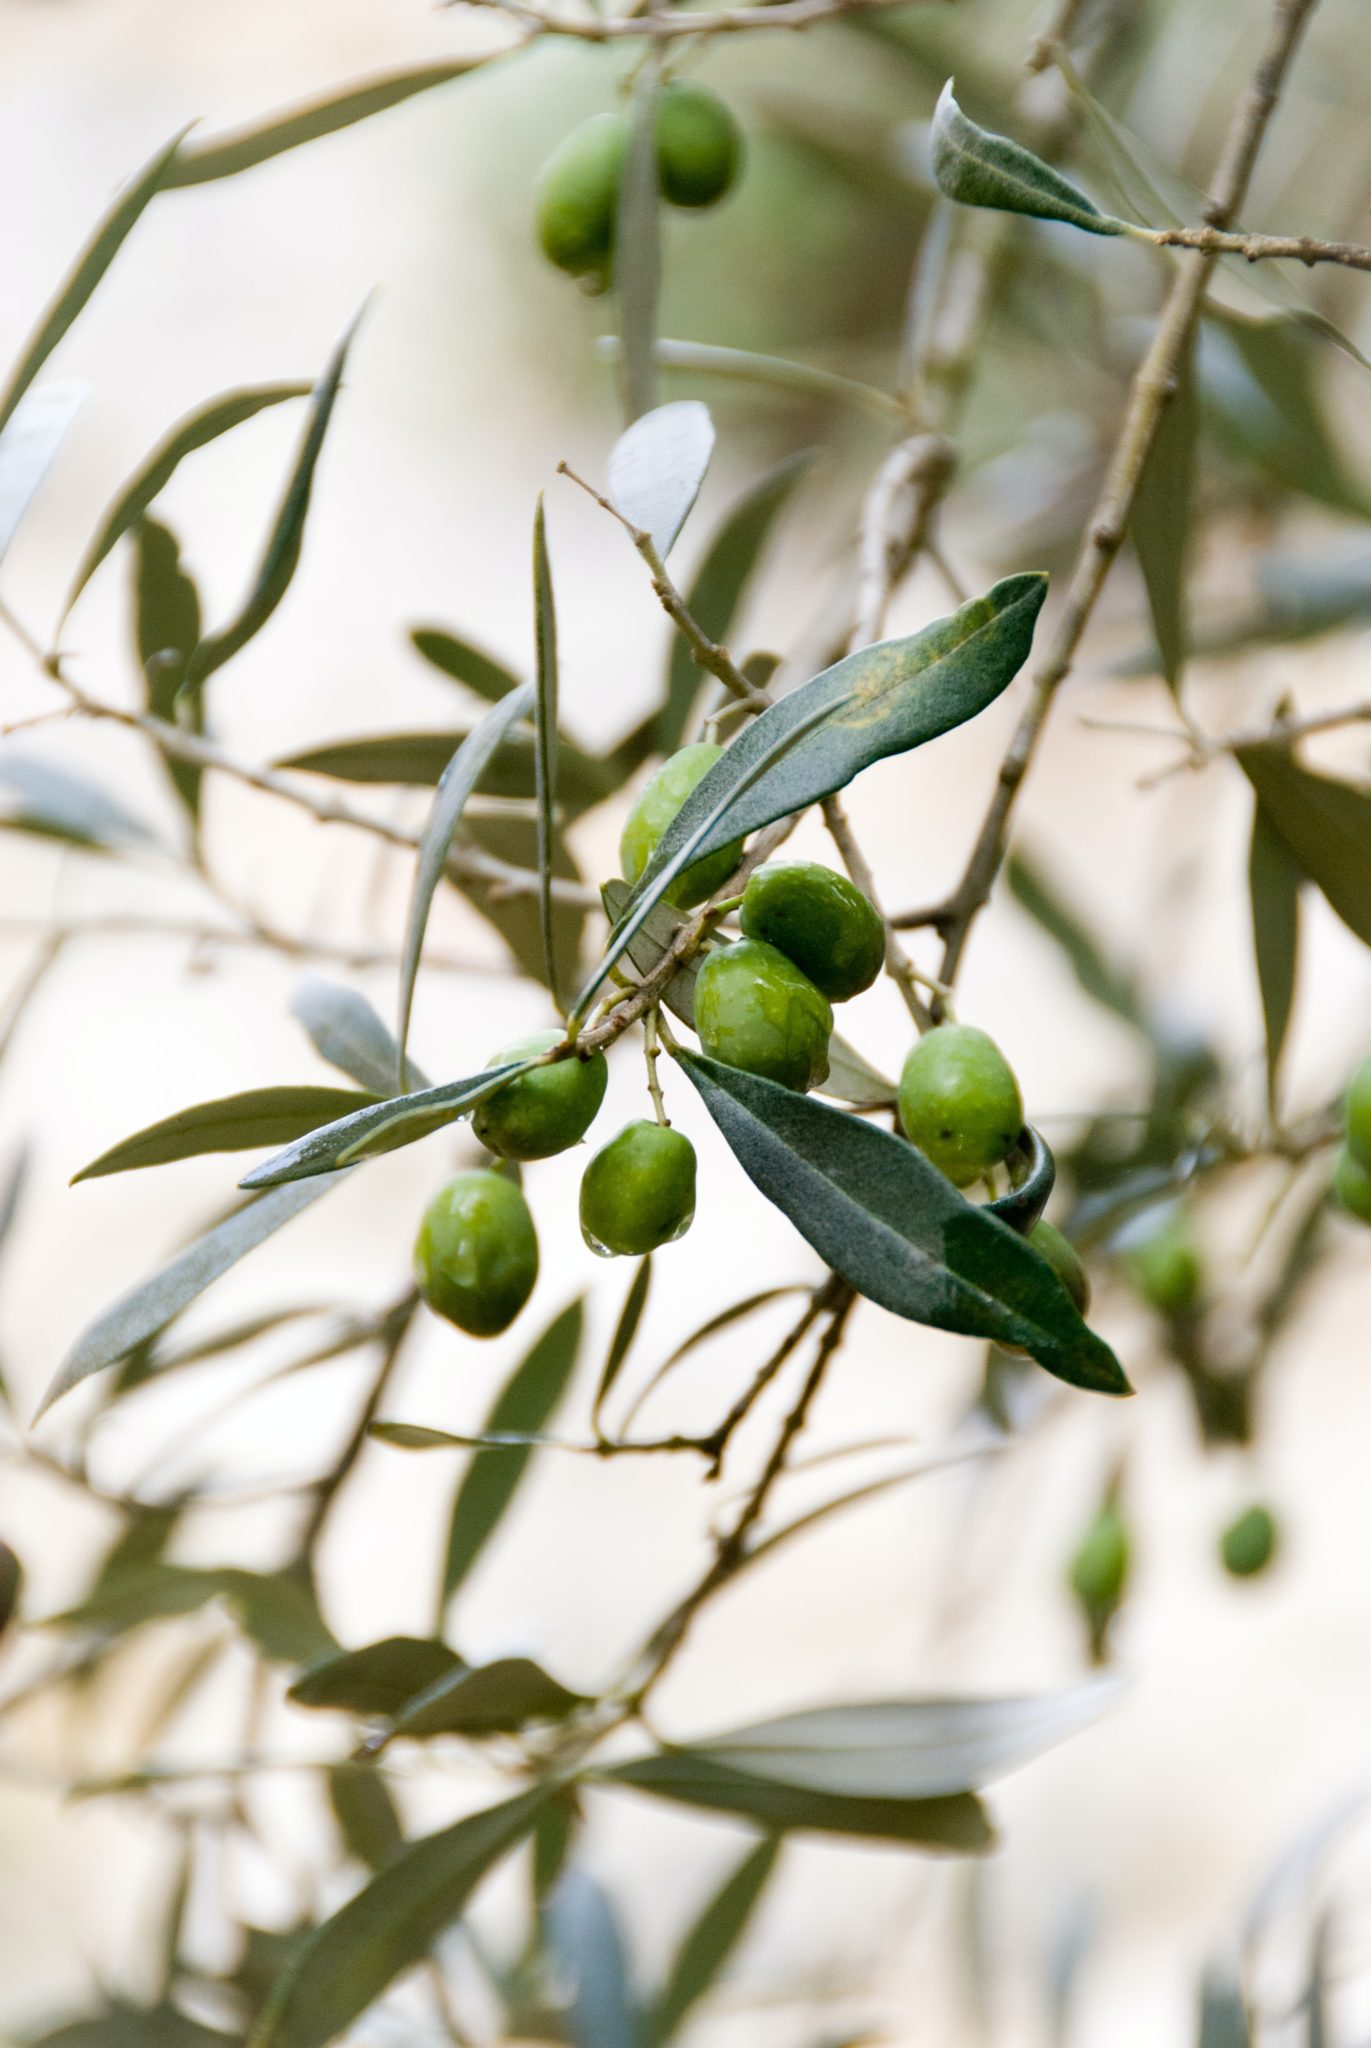 close up image of olives on an olive tree